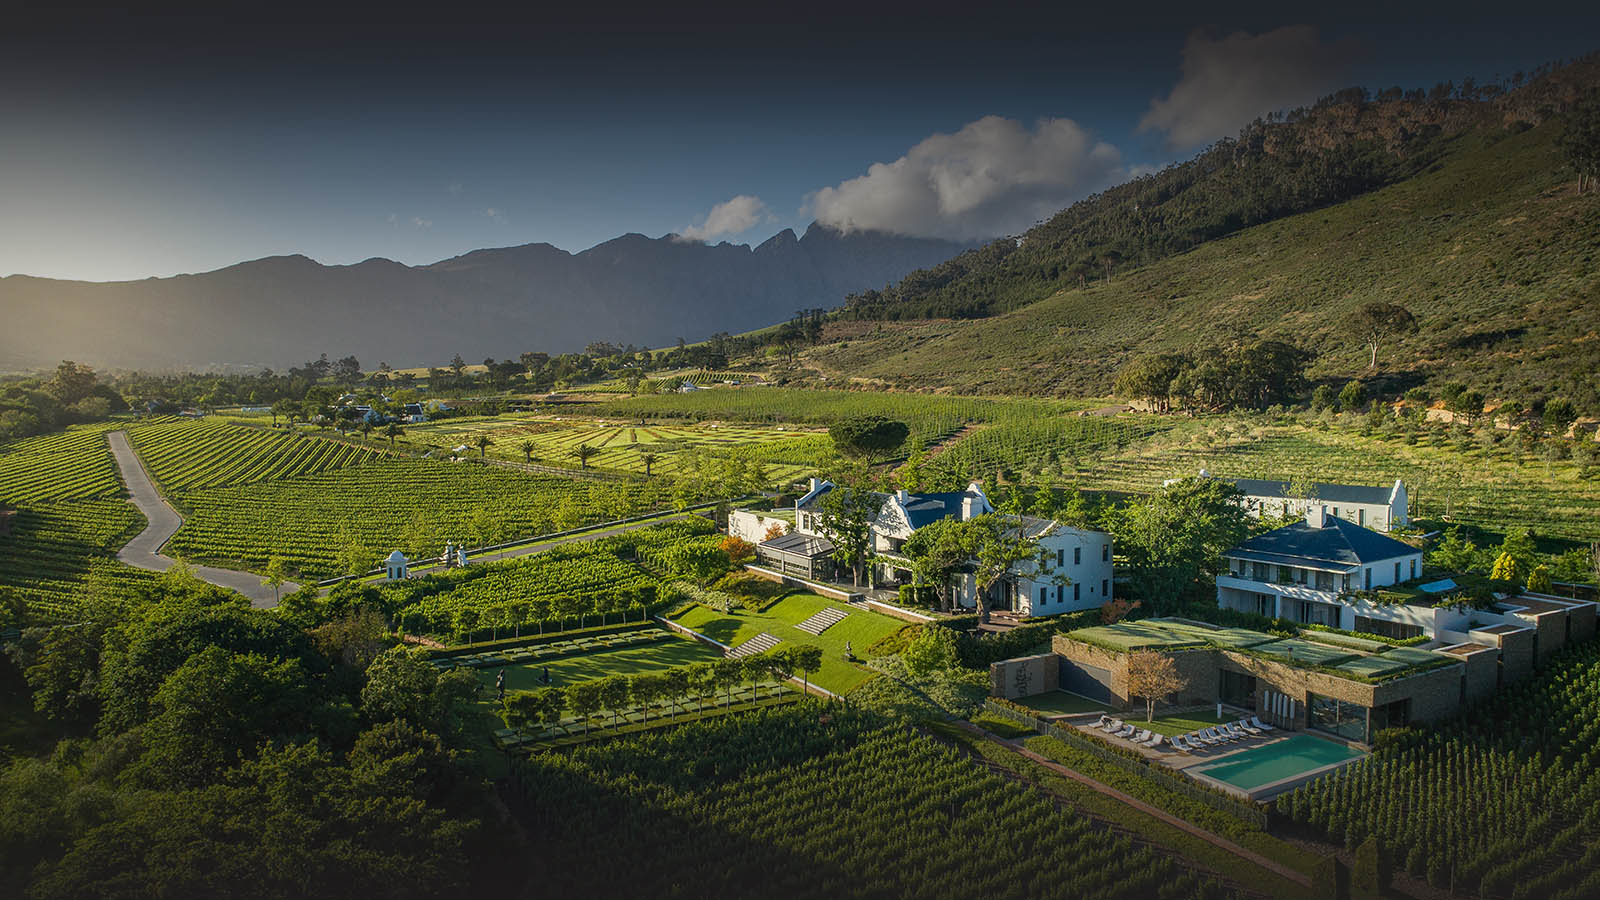 leeu estates franschhoek-cape-town-lodges-zambia-in-style-south-africa-sophisticated-boutique-hotel-aerial-view-manor-house